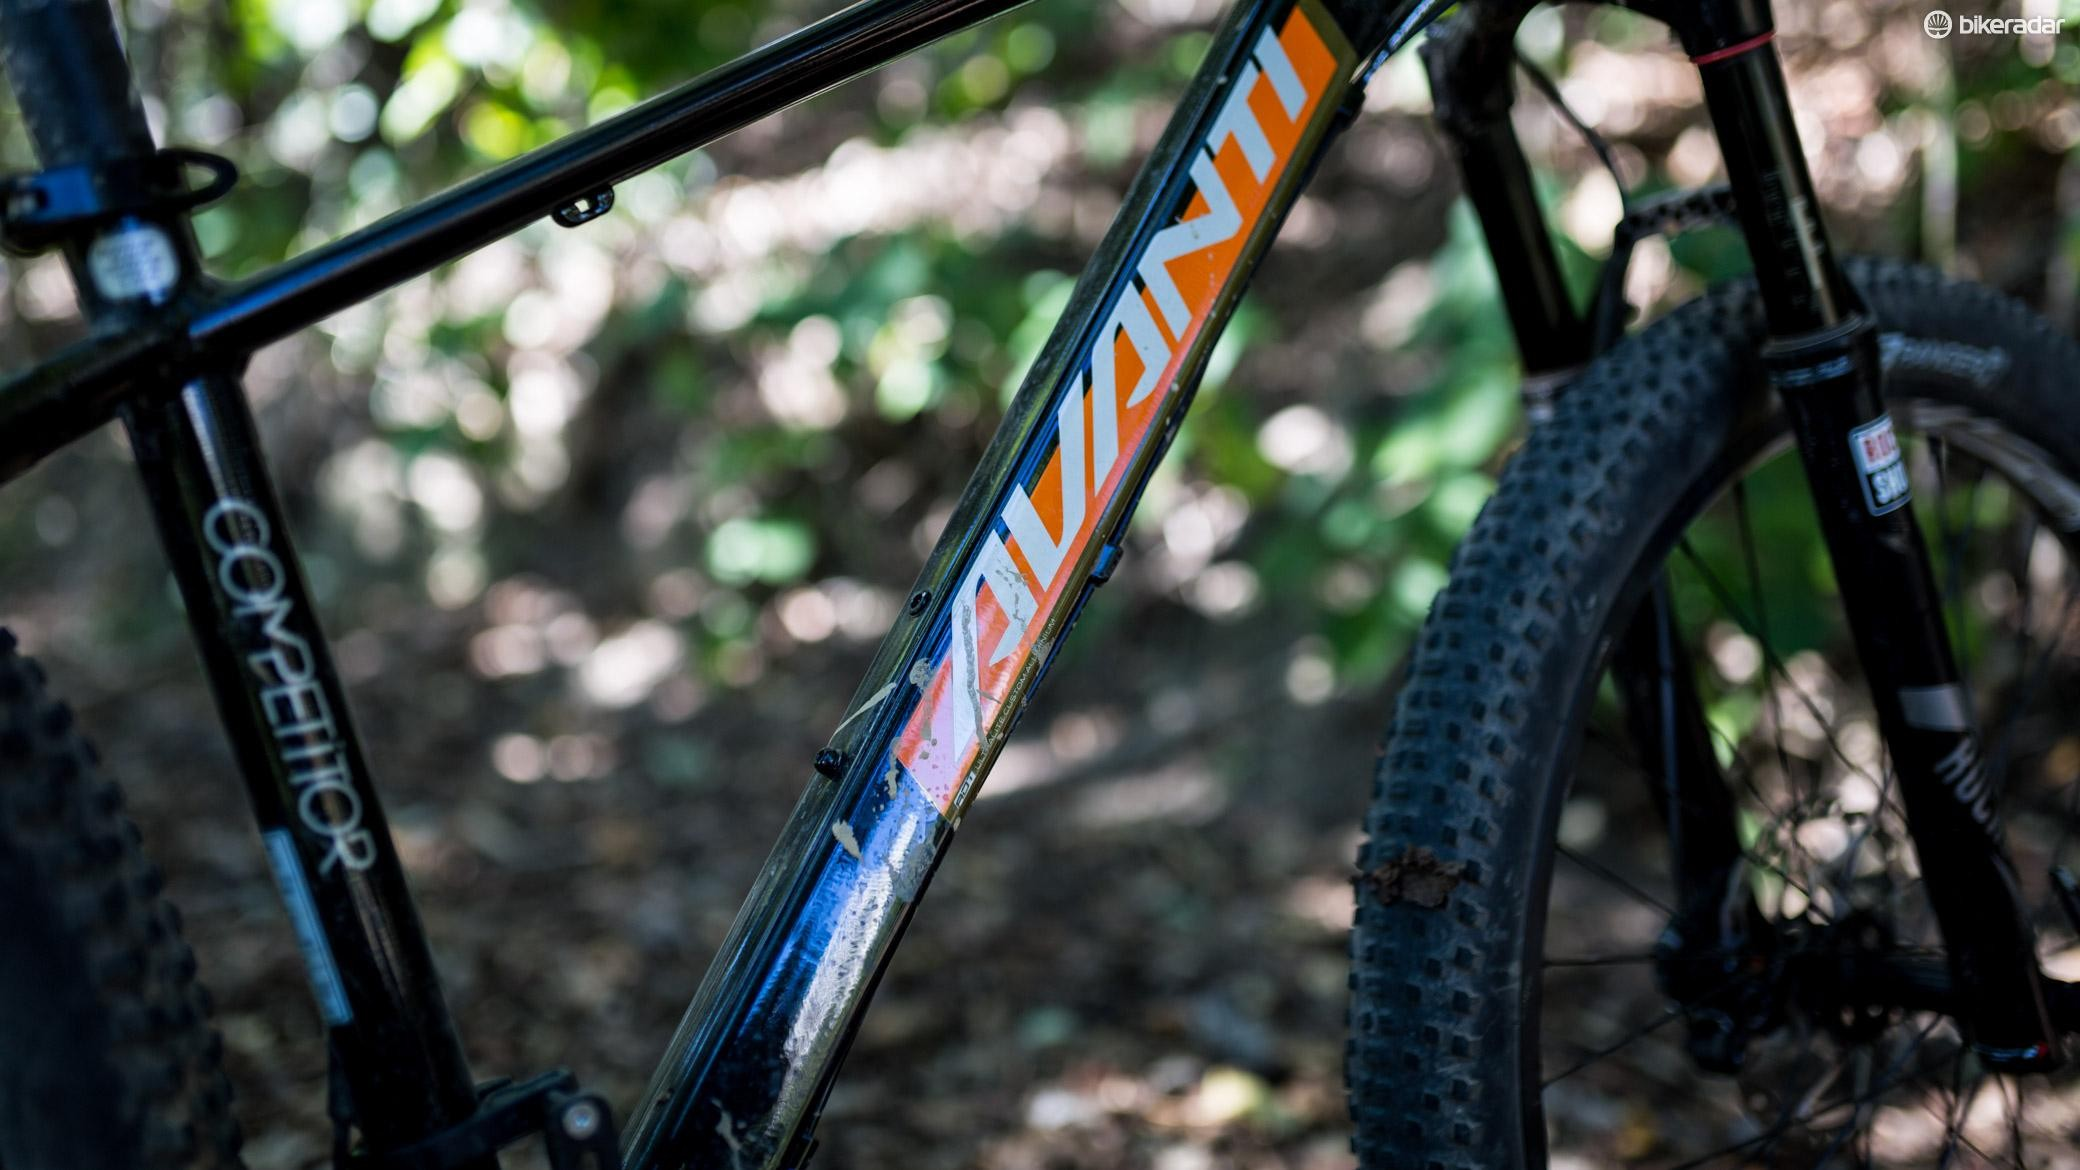 We're big fans of the retro orange and black paint job, especially when it's splattered in mud